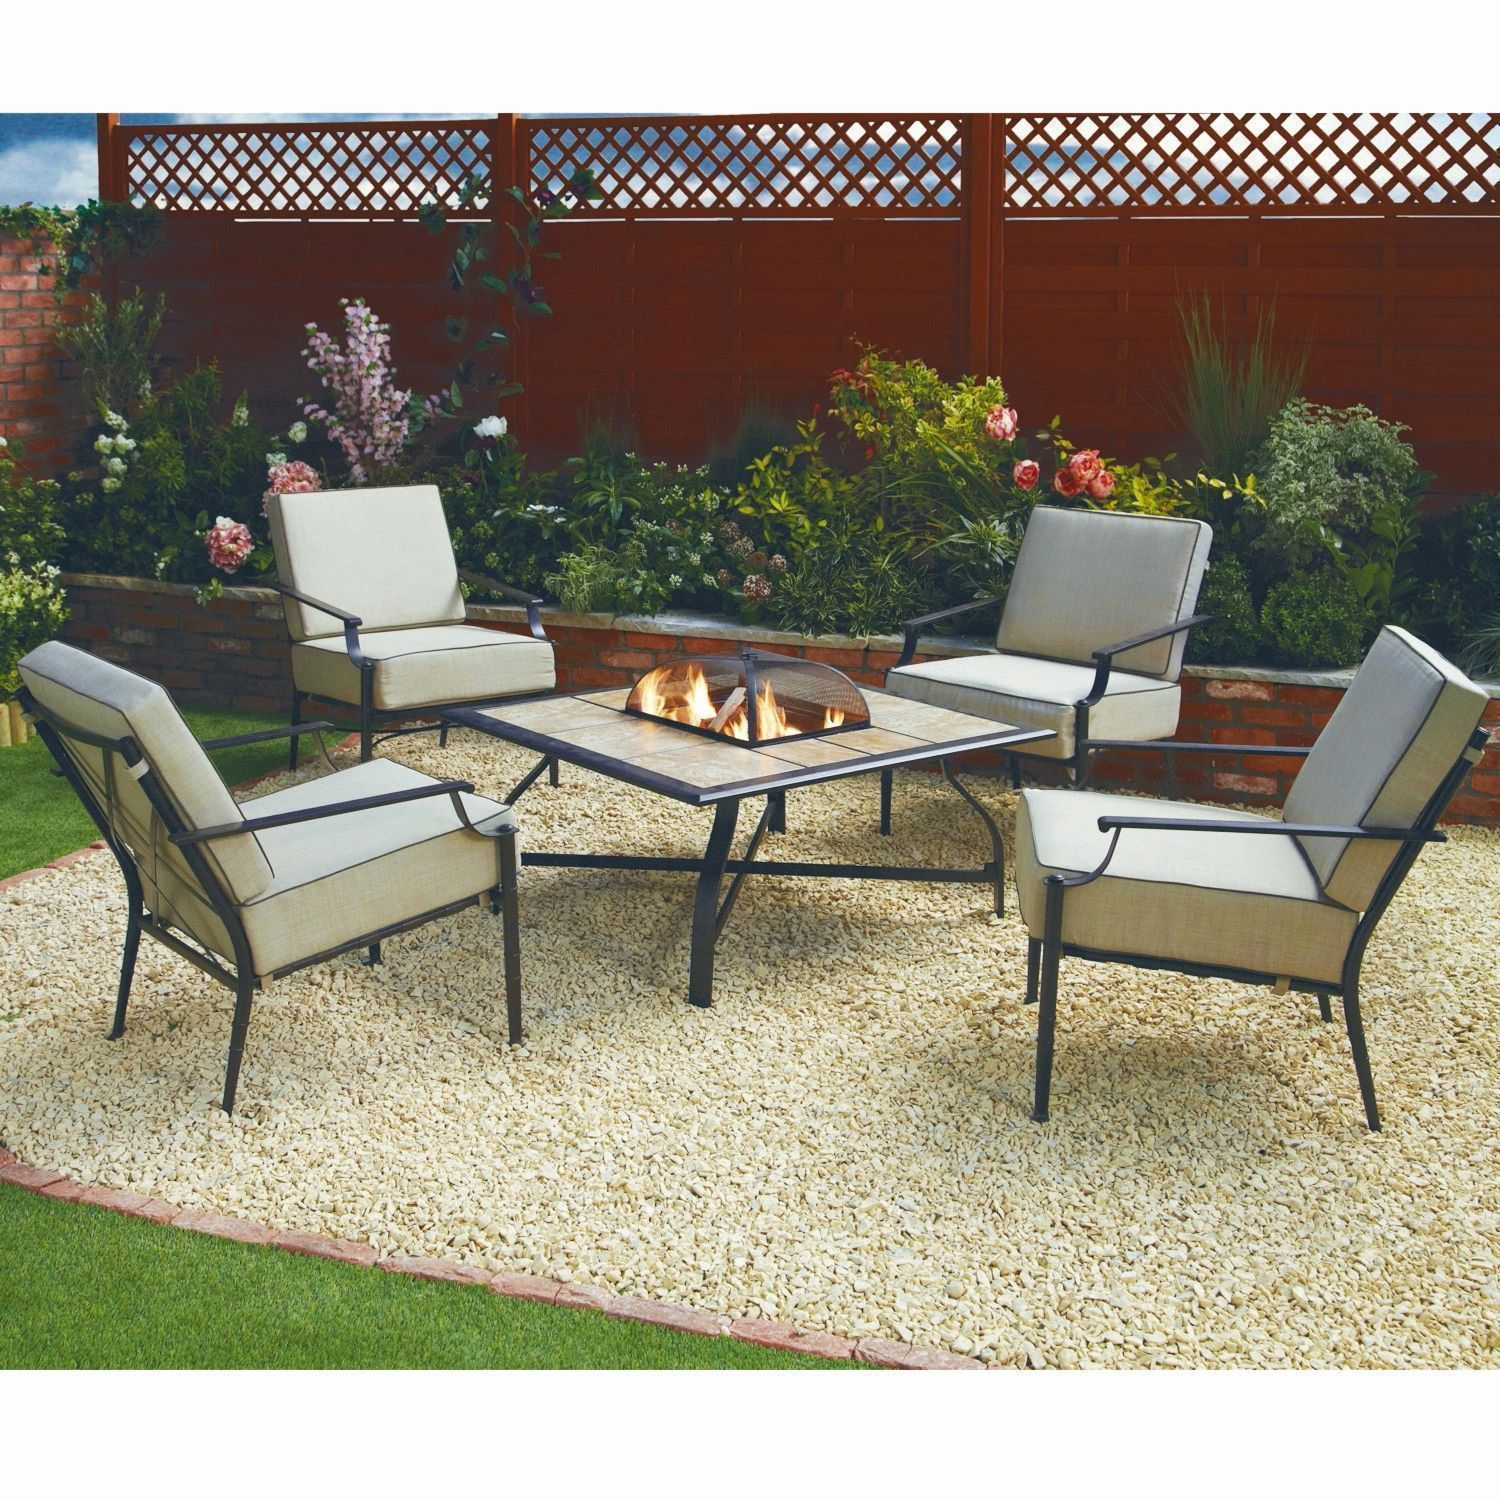 Fire pit dining set best of fire pit gravel area costco barrel gas